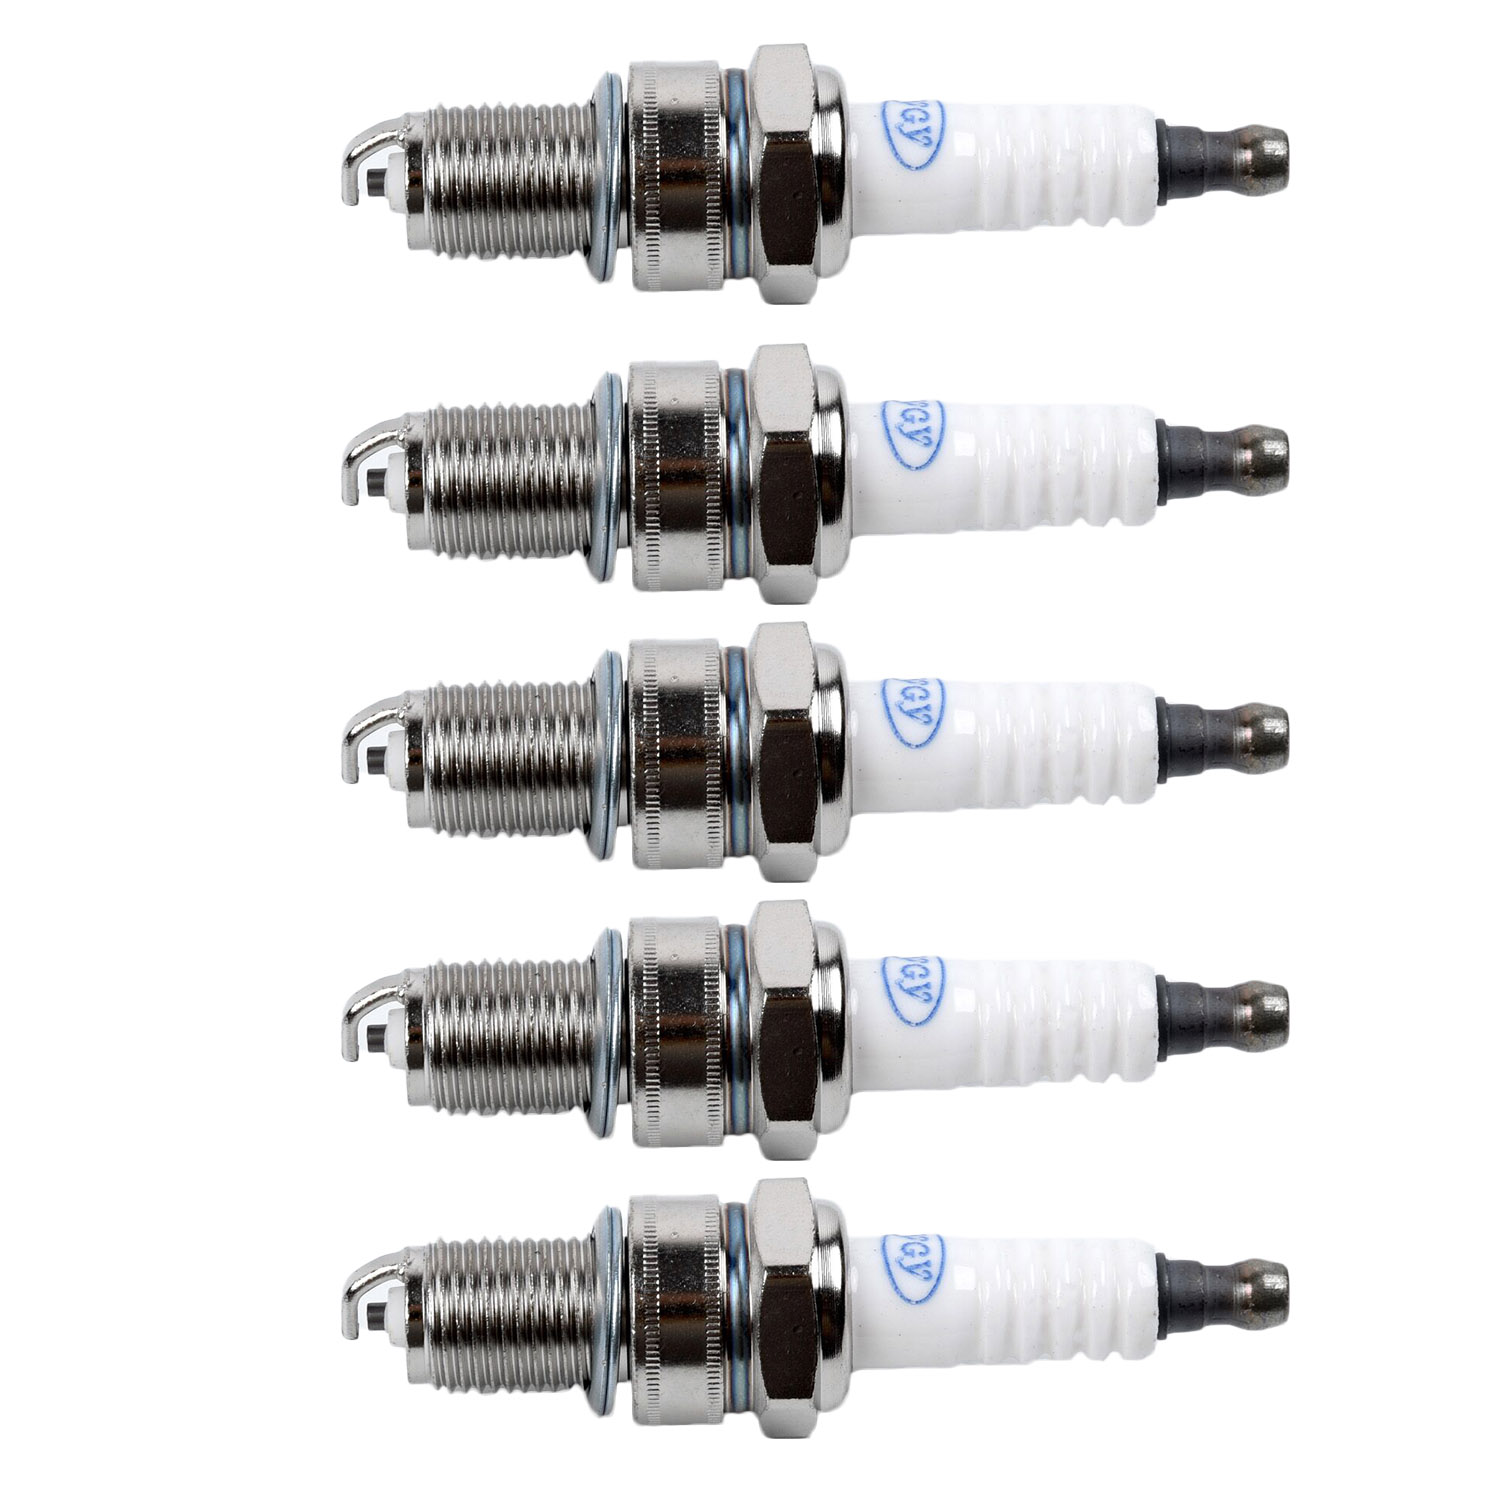 5pcs Spark Plug For Honda GX120 GX160 GX200 GX240 GX270 GX340 GX390 Power Equipment Accessories Lawnmower Parts